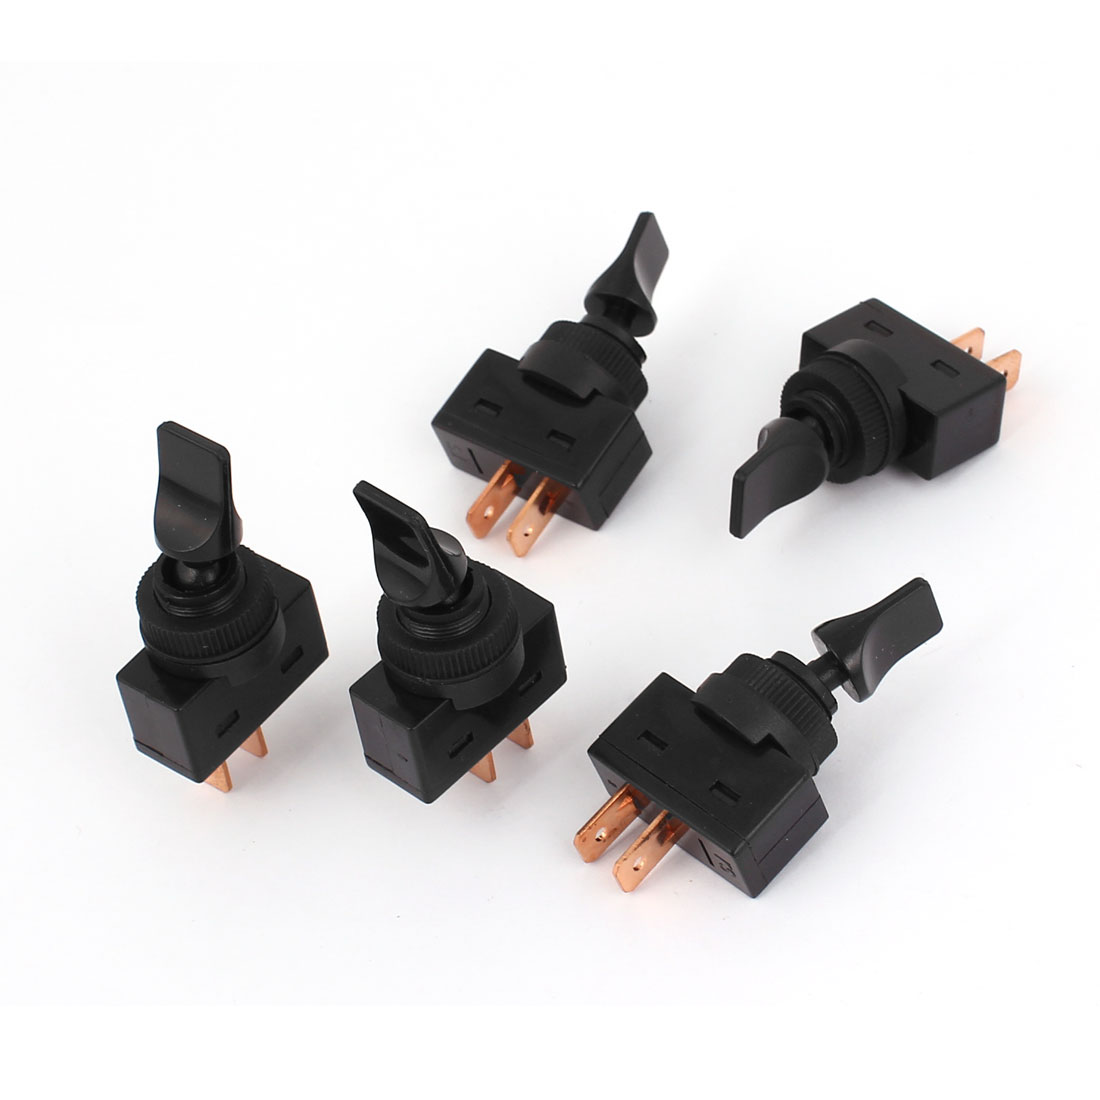 DC 12V 20A Car Automotive 2 Pin 2 Position On/Off Toggle Switch 5 Pcs